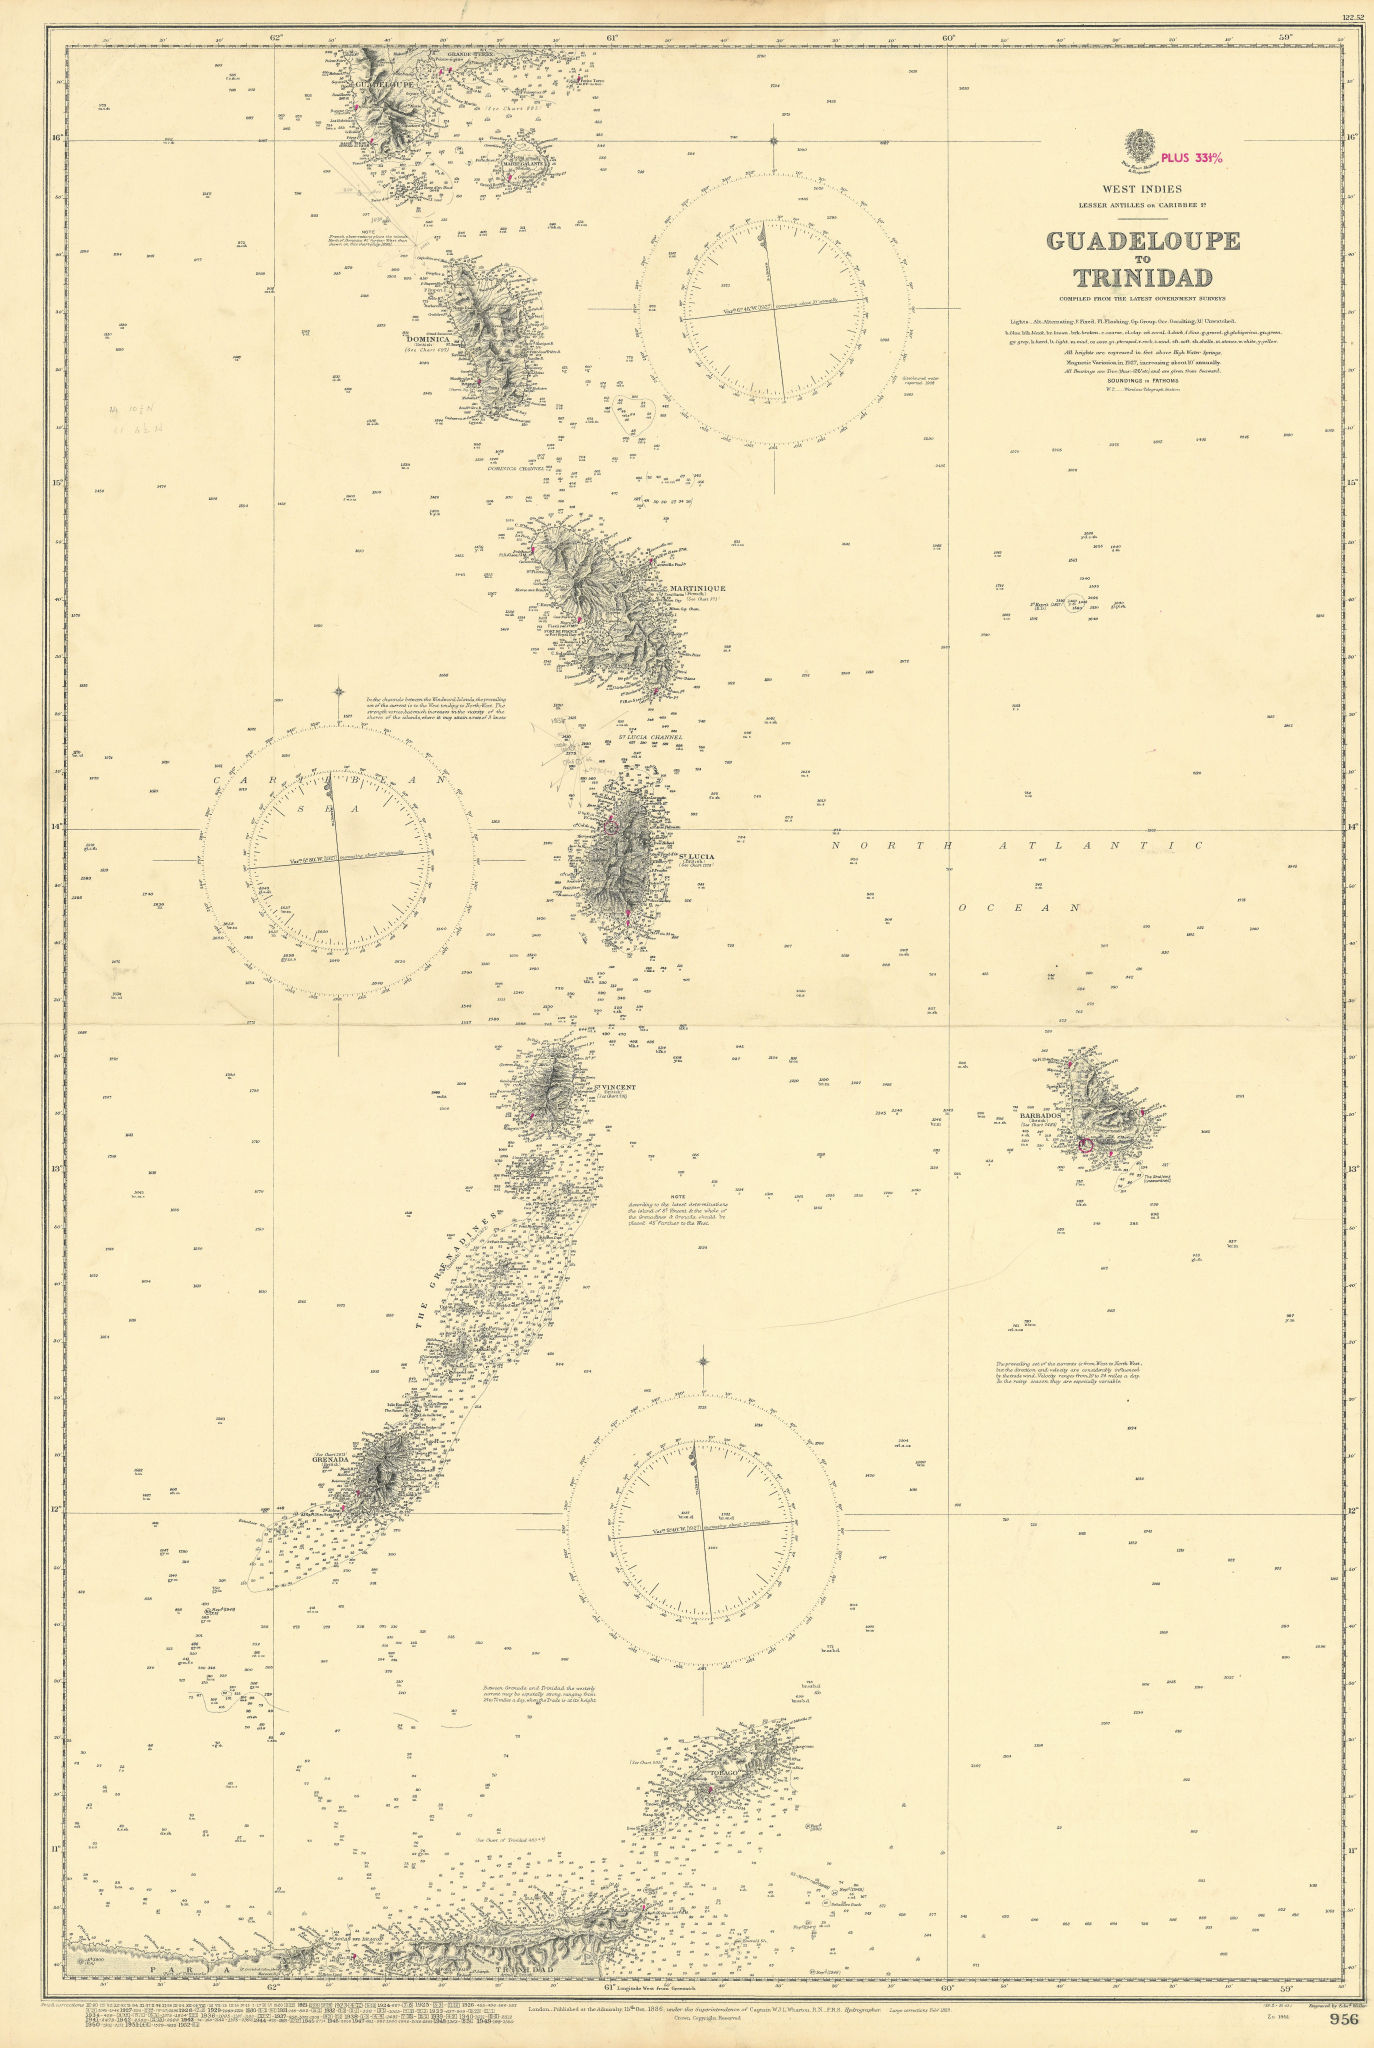 Windward Islands Barbados St Lucia Vincent ADMIRALTY chart 1886 (1952) old map